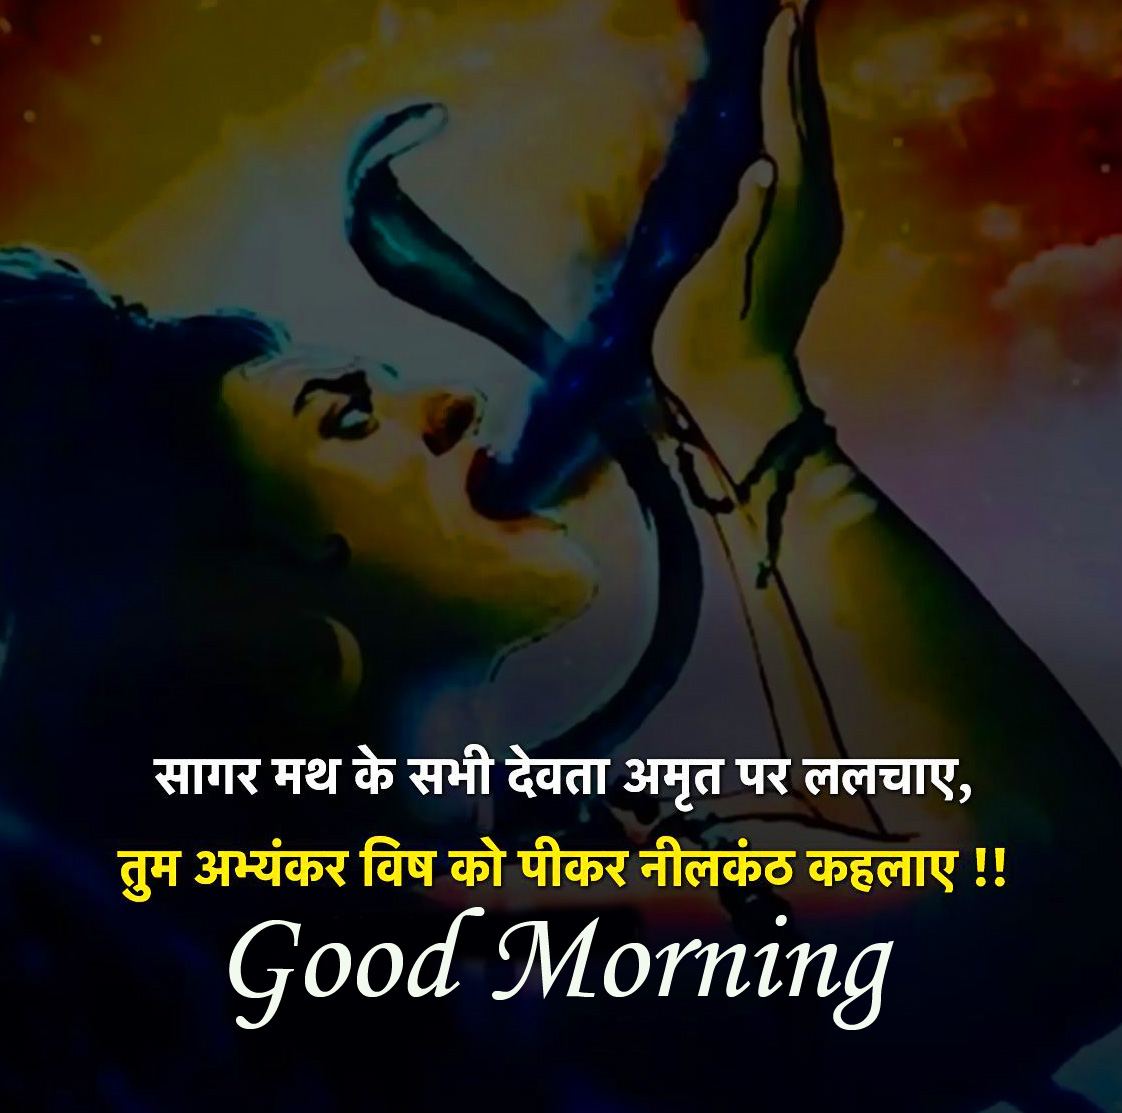 Shiv Shayari Good Morning Pic